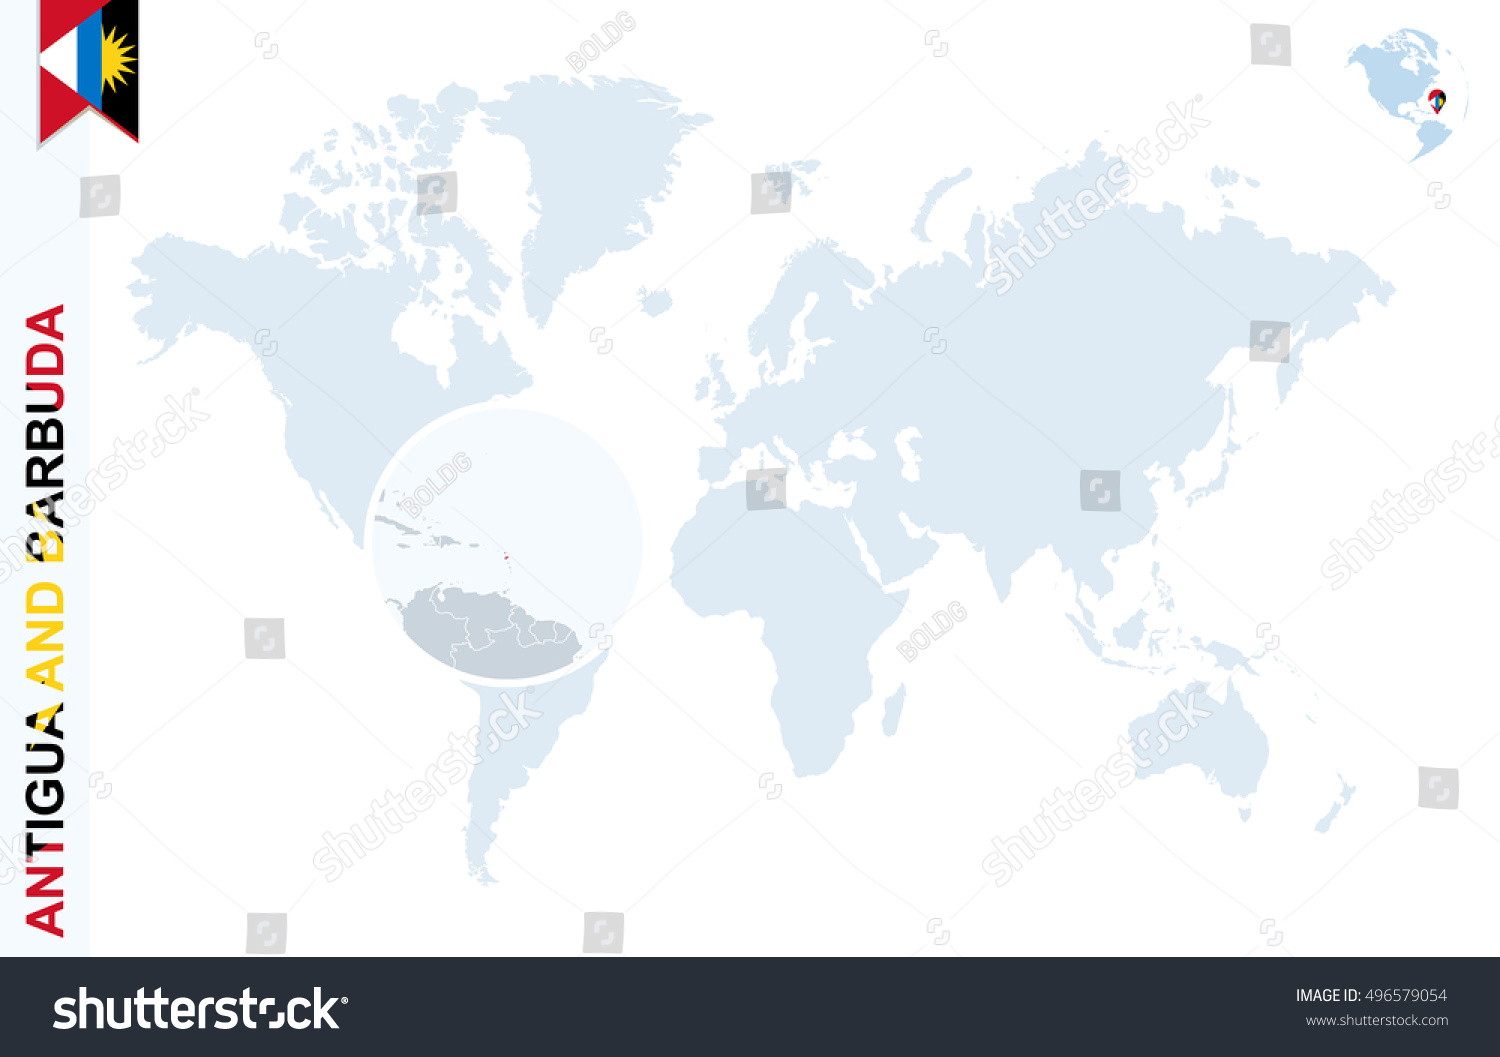 Antigua And Barbuda World Map.Royalty Free Stock Illustration Of World Map Magnifying On Antigua